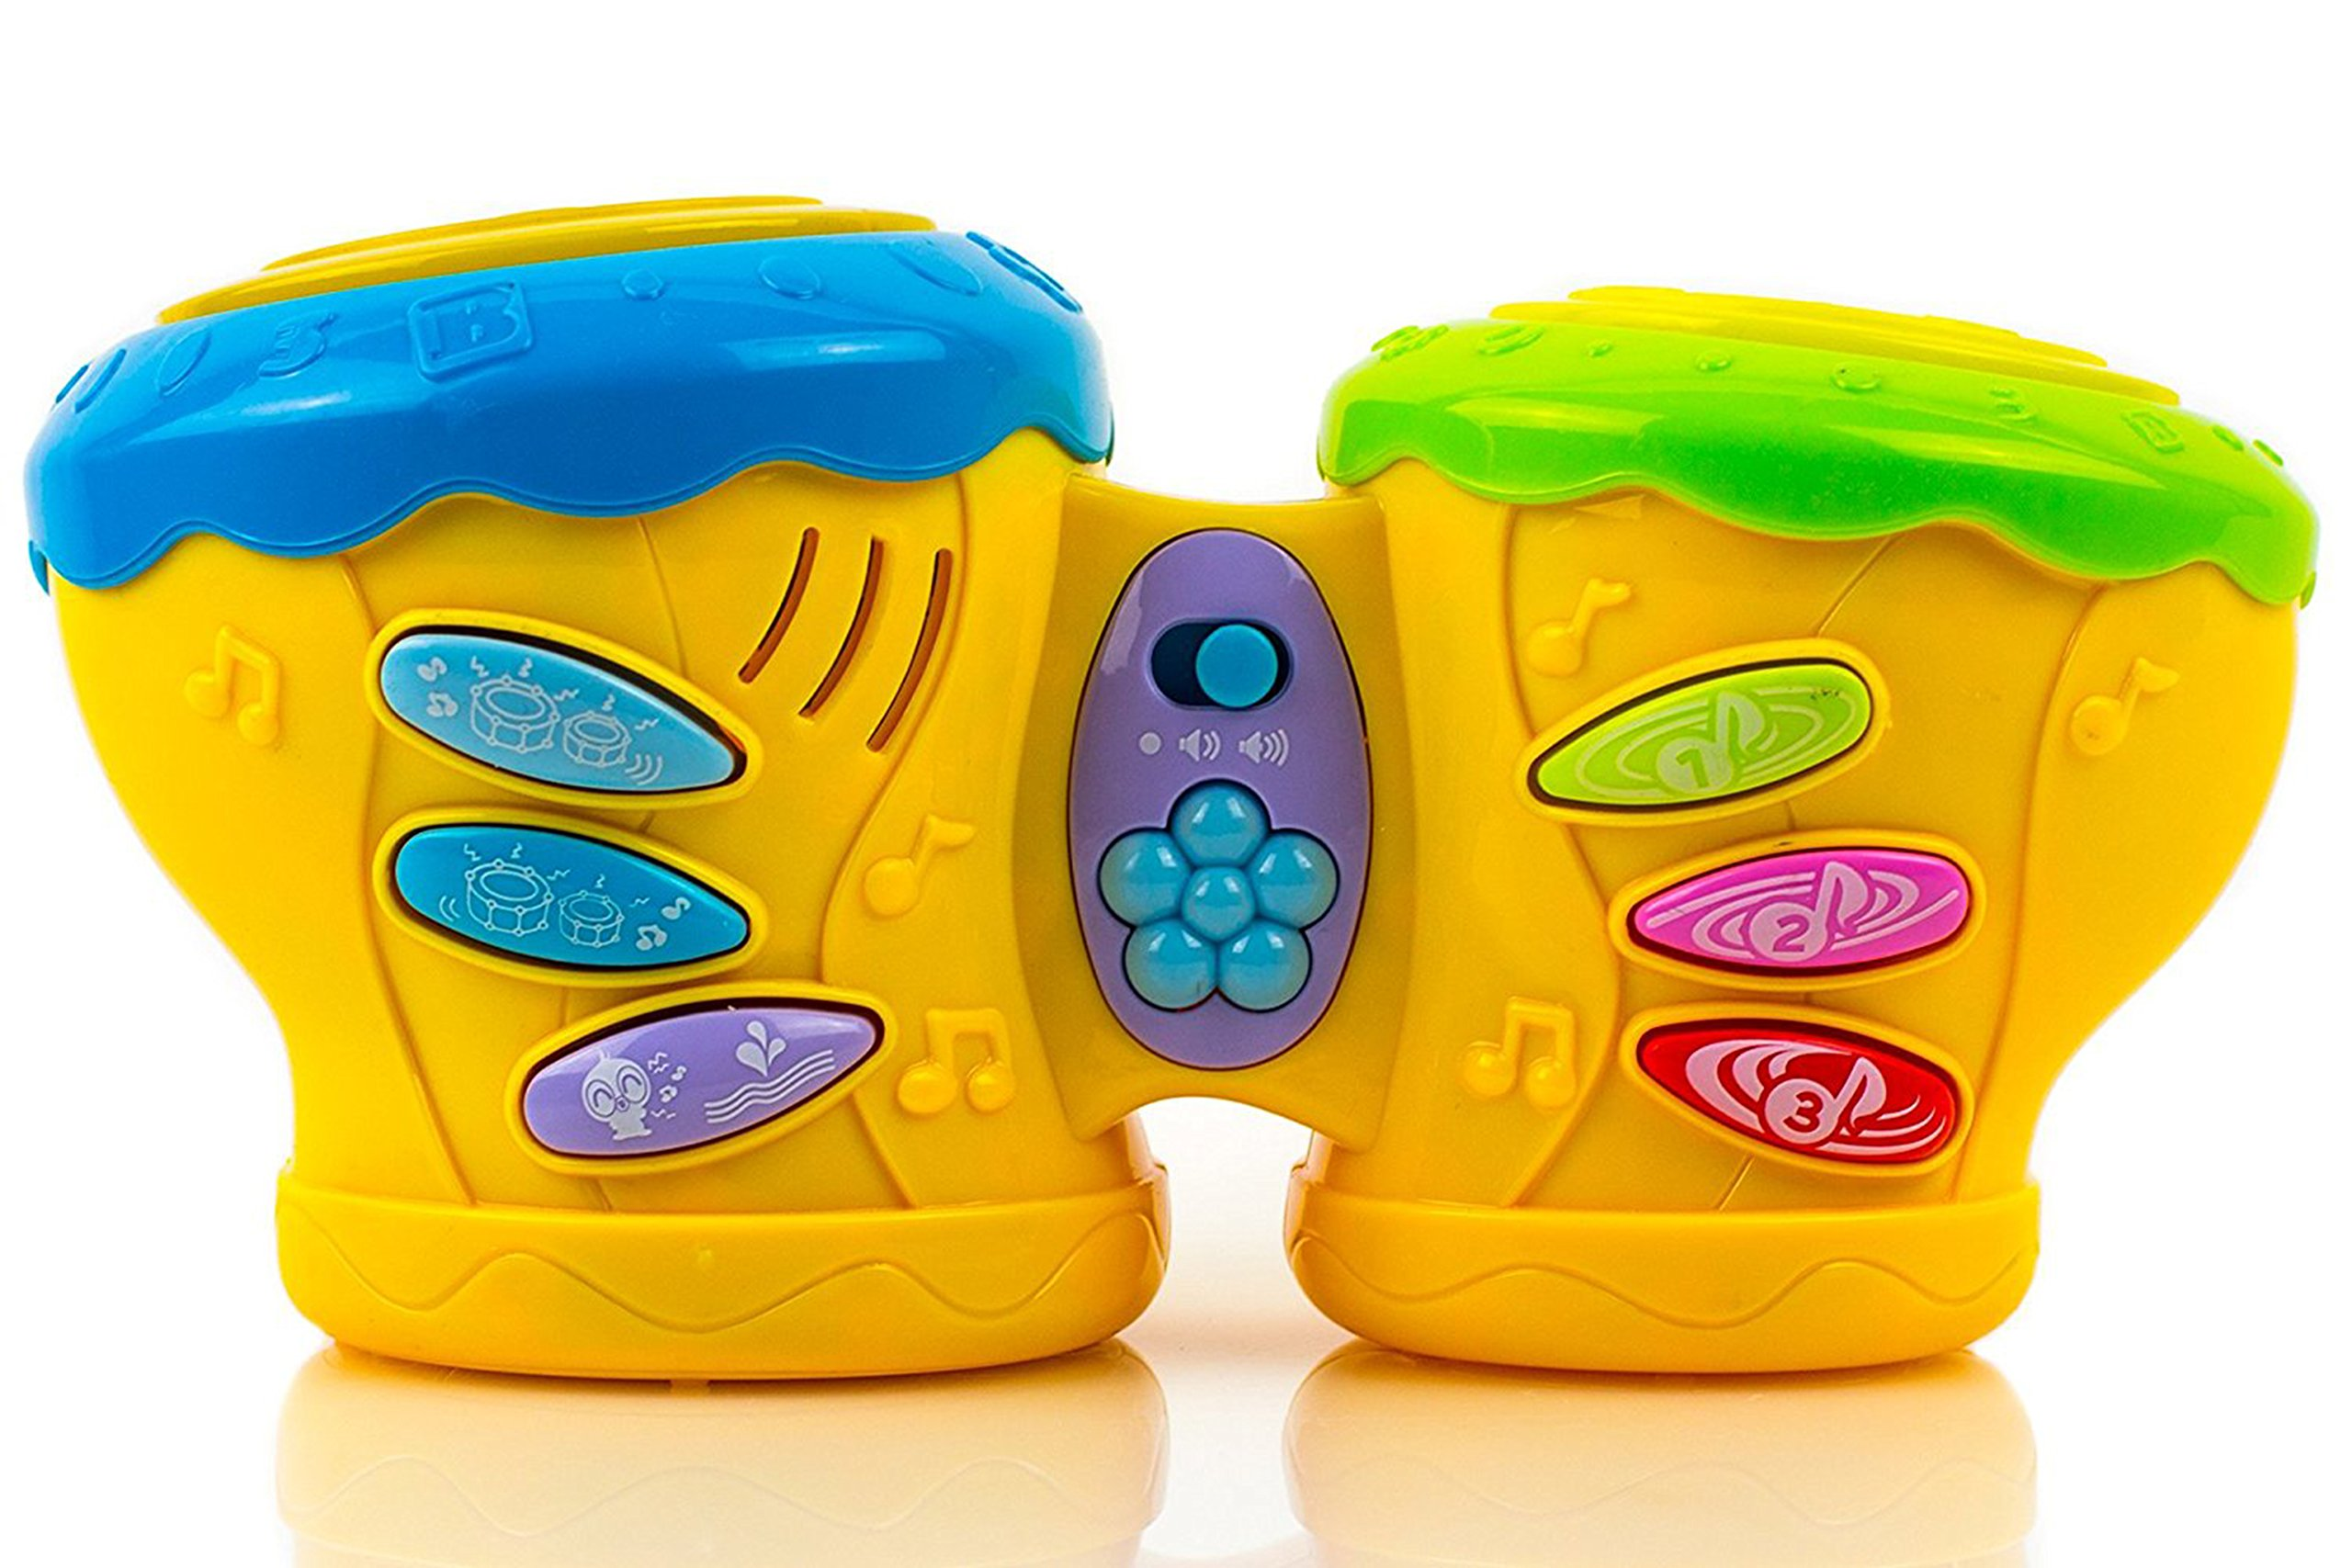 Toysery Multifunctional Musical Double Pat Drum Toy for Kids - Educational Baby Toy Drum with Lights and Sounds - Battery Operated.(Colors May Vary)